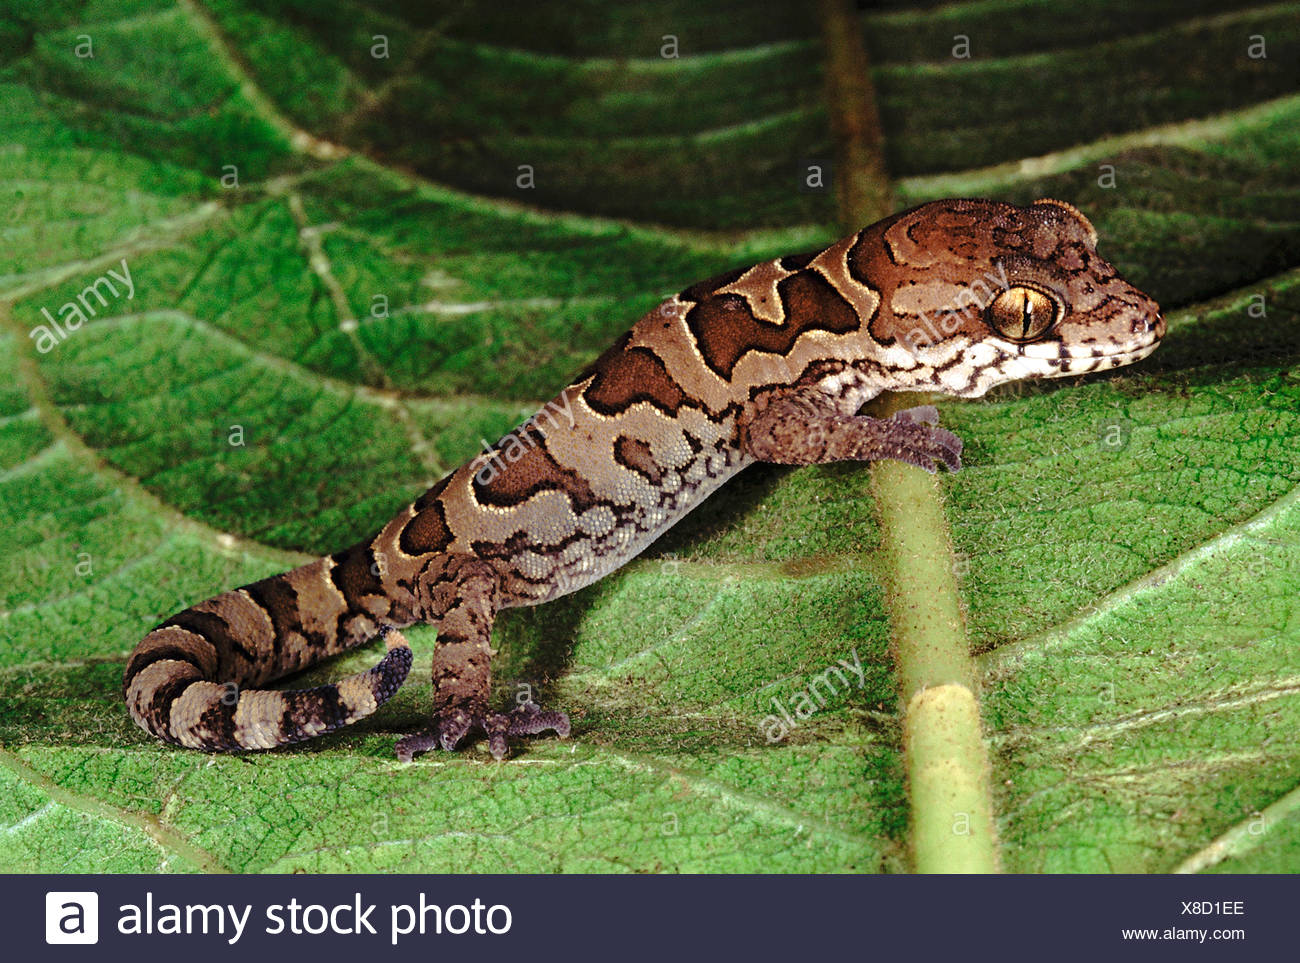 Blotched gecko. Geckoella Nebulosa. A ground dwelling gecko found in central India. - Stock Image